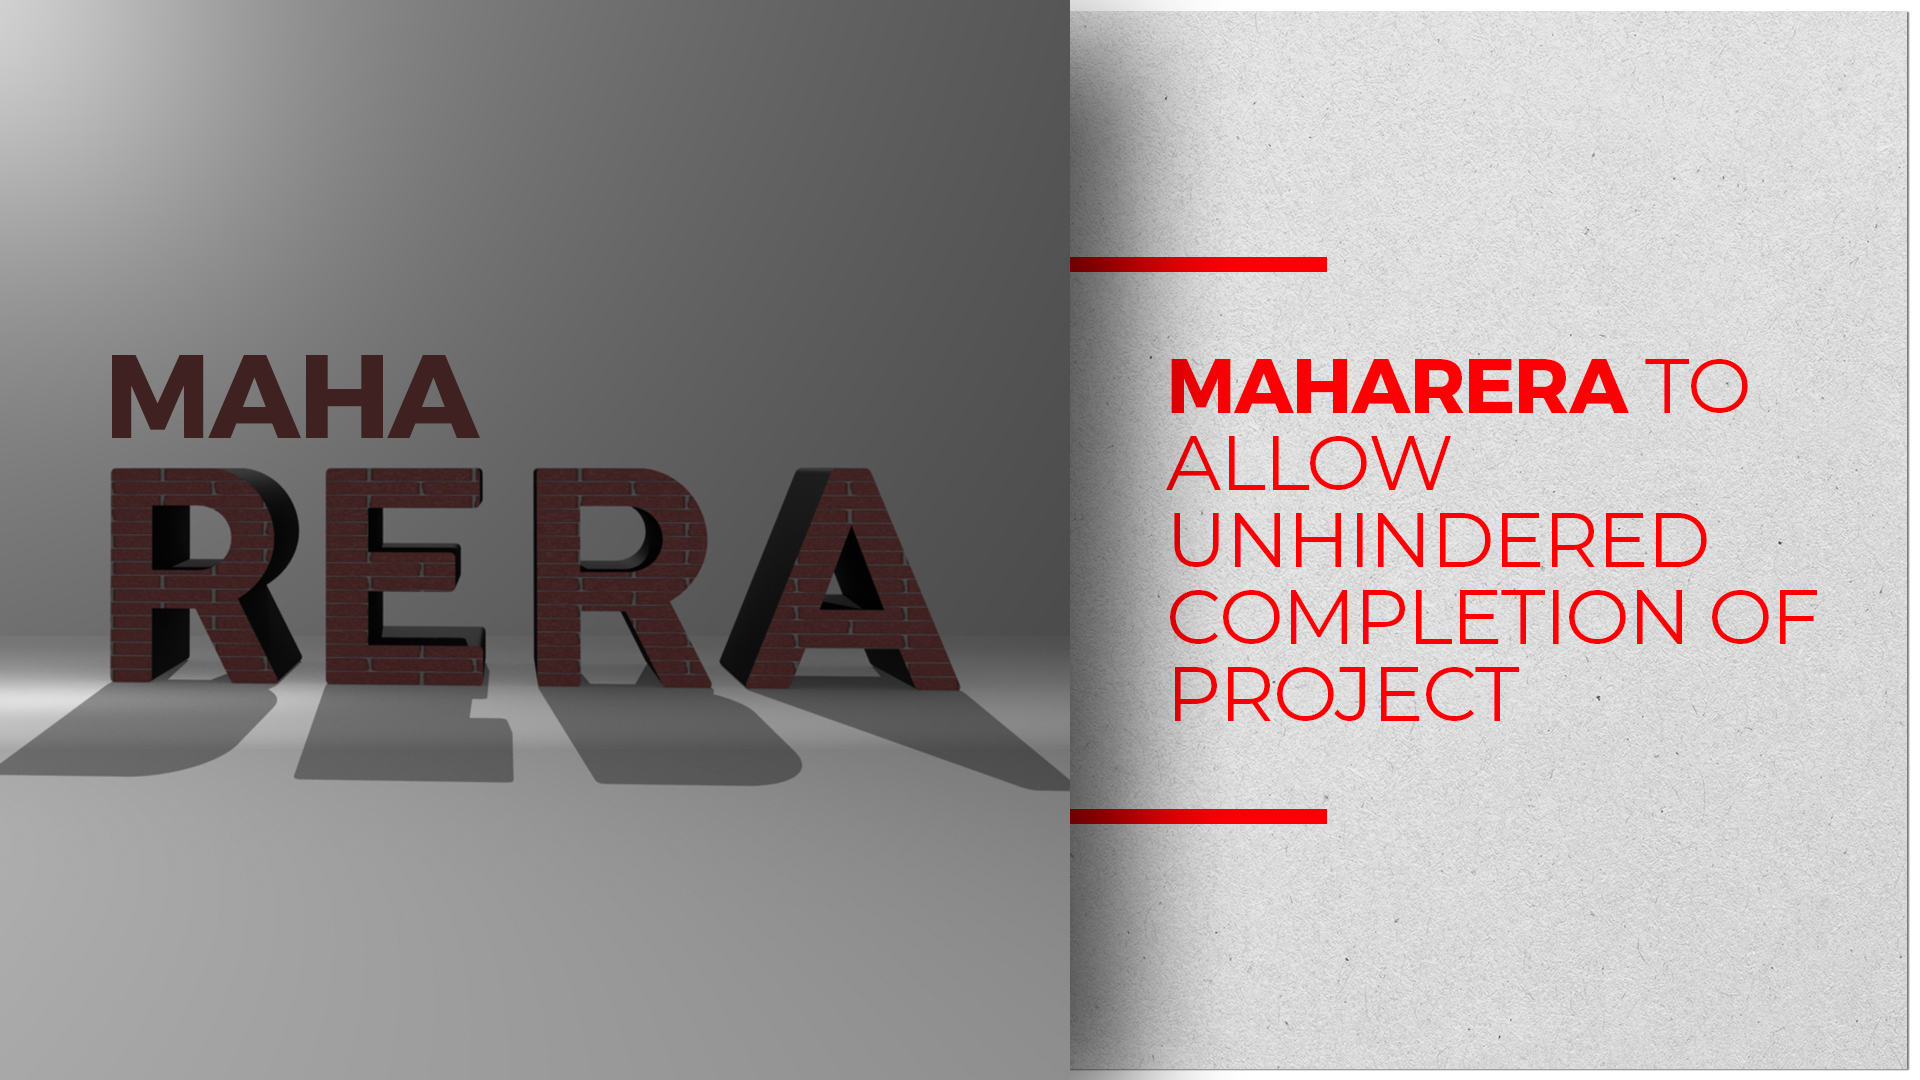 Project incomplete, but MahaRERA rejects buyer's interest plea